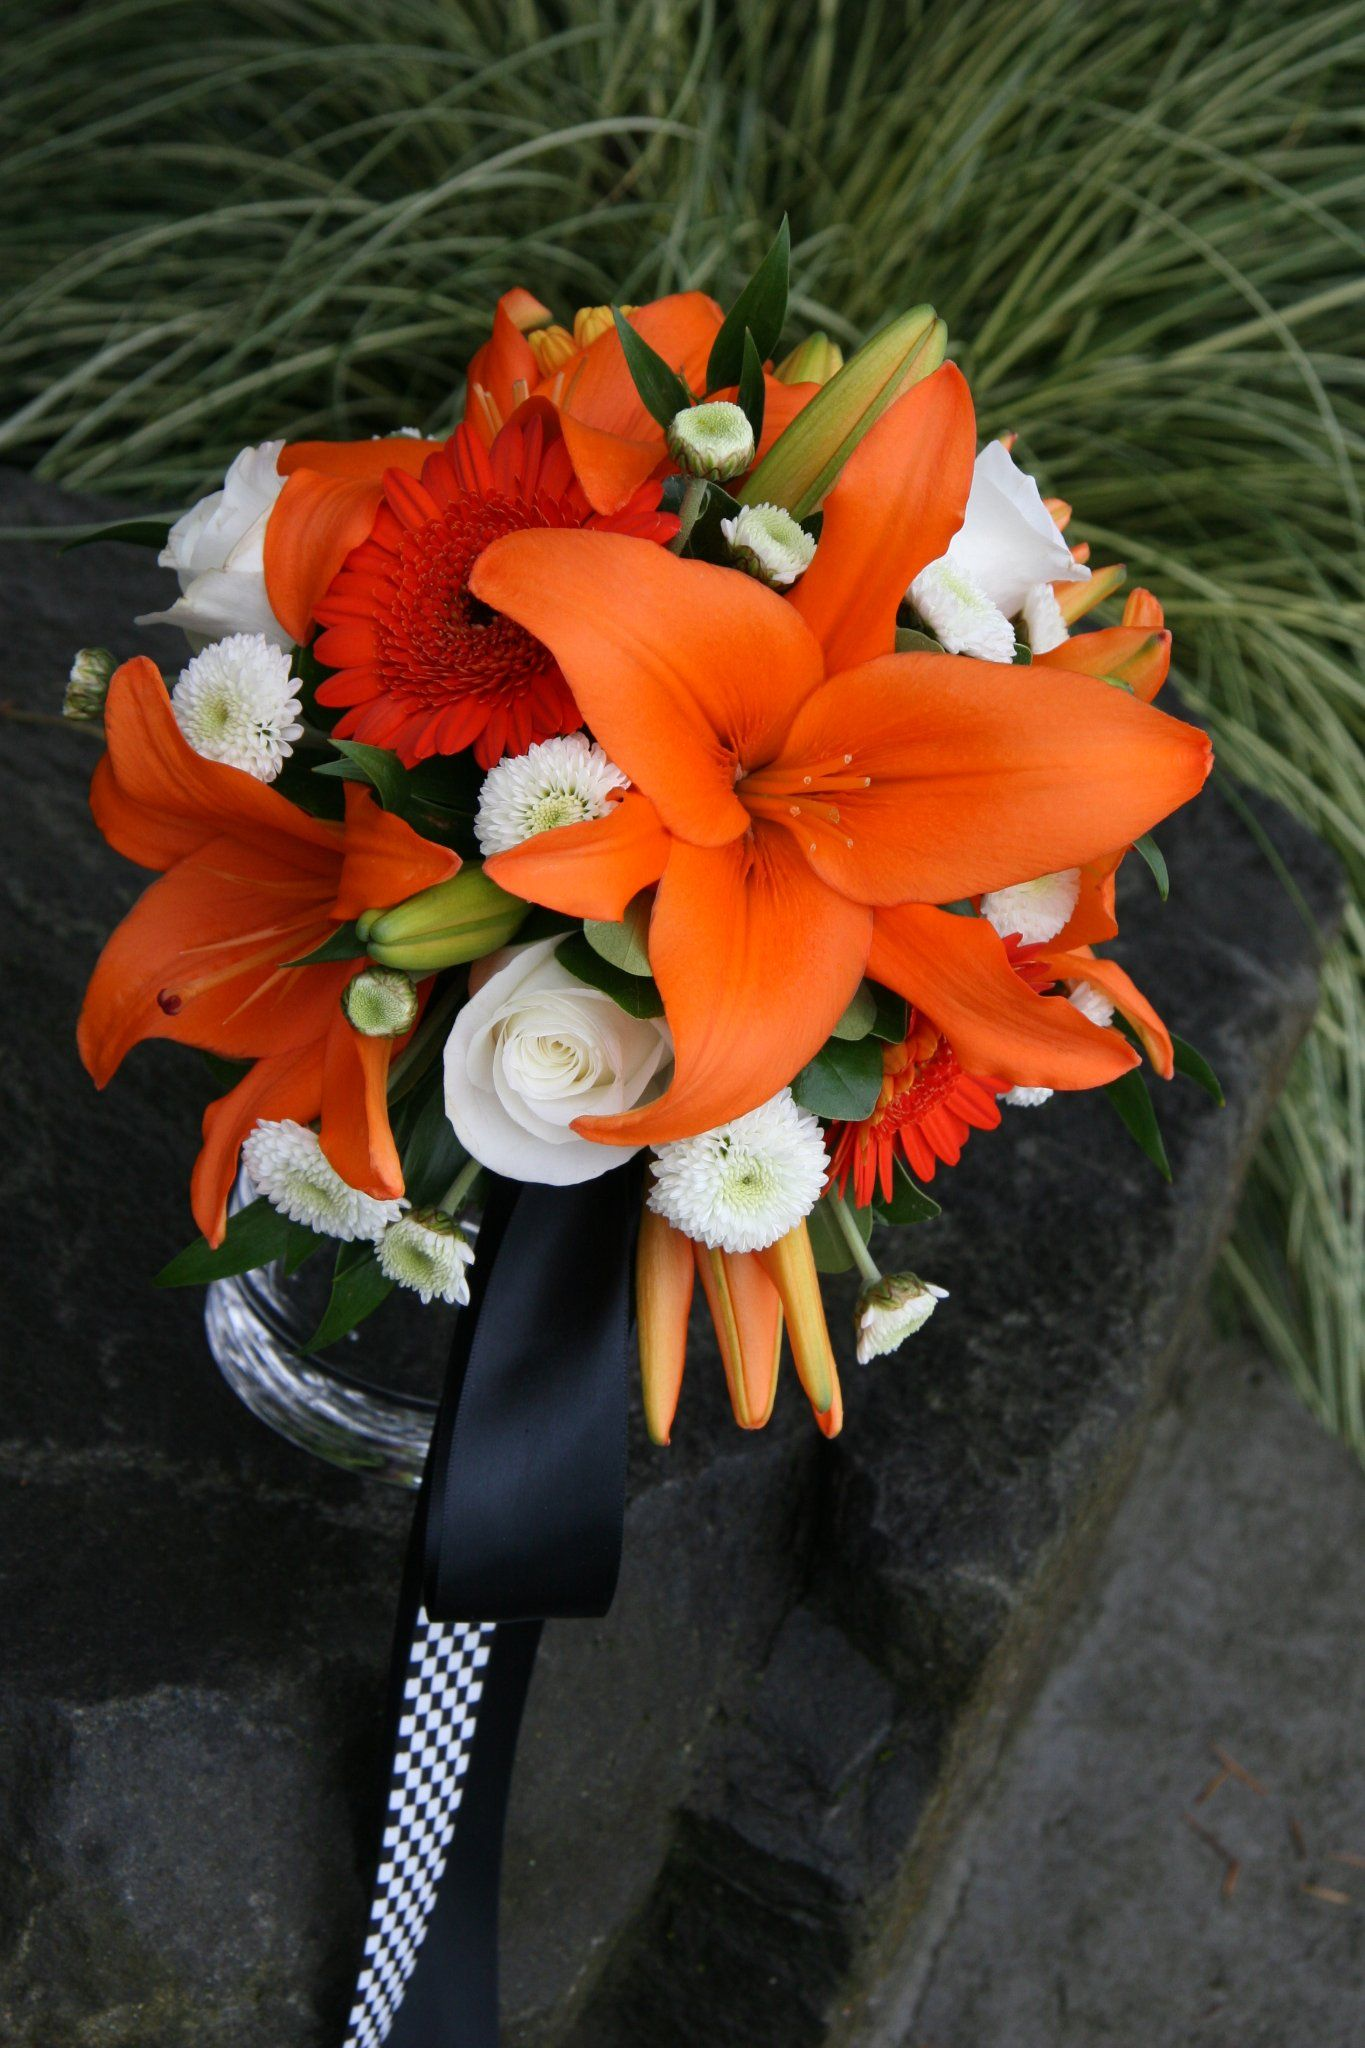 Striking wedding bouquet which features orange lilies buds striking wedding bouquet which features orange lilies buds orange gerbera daisies white roses white mums greeneryfoliage hand tied with blackblack izmirmasajfo